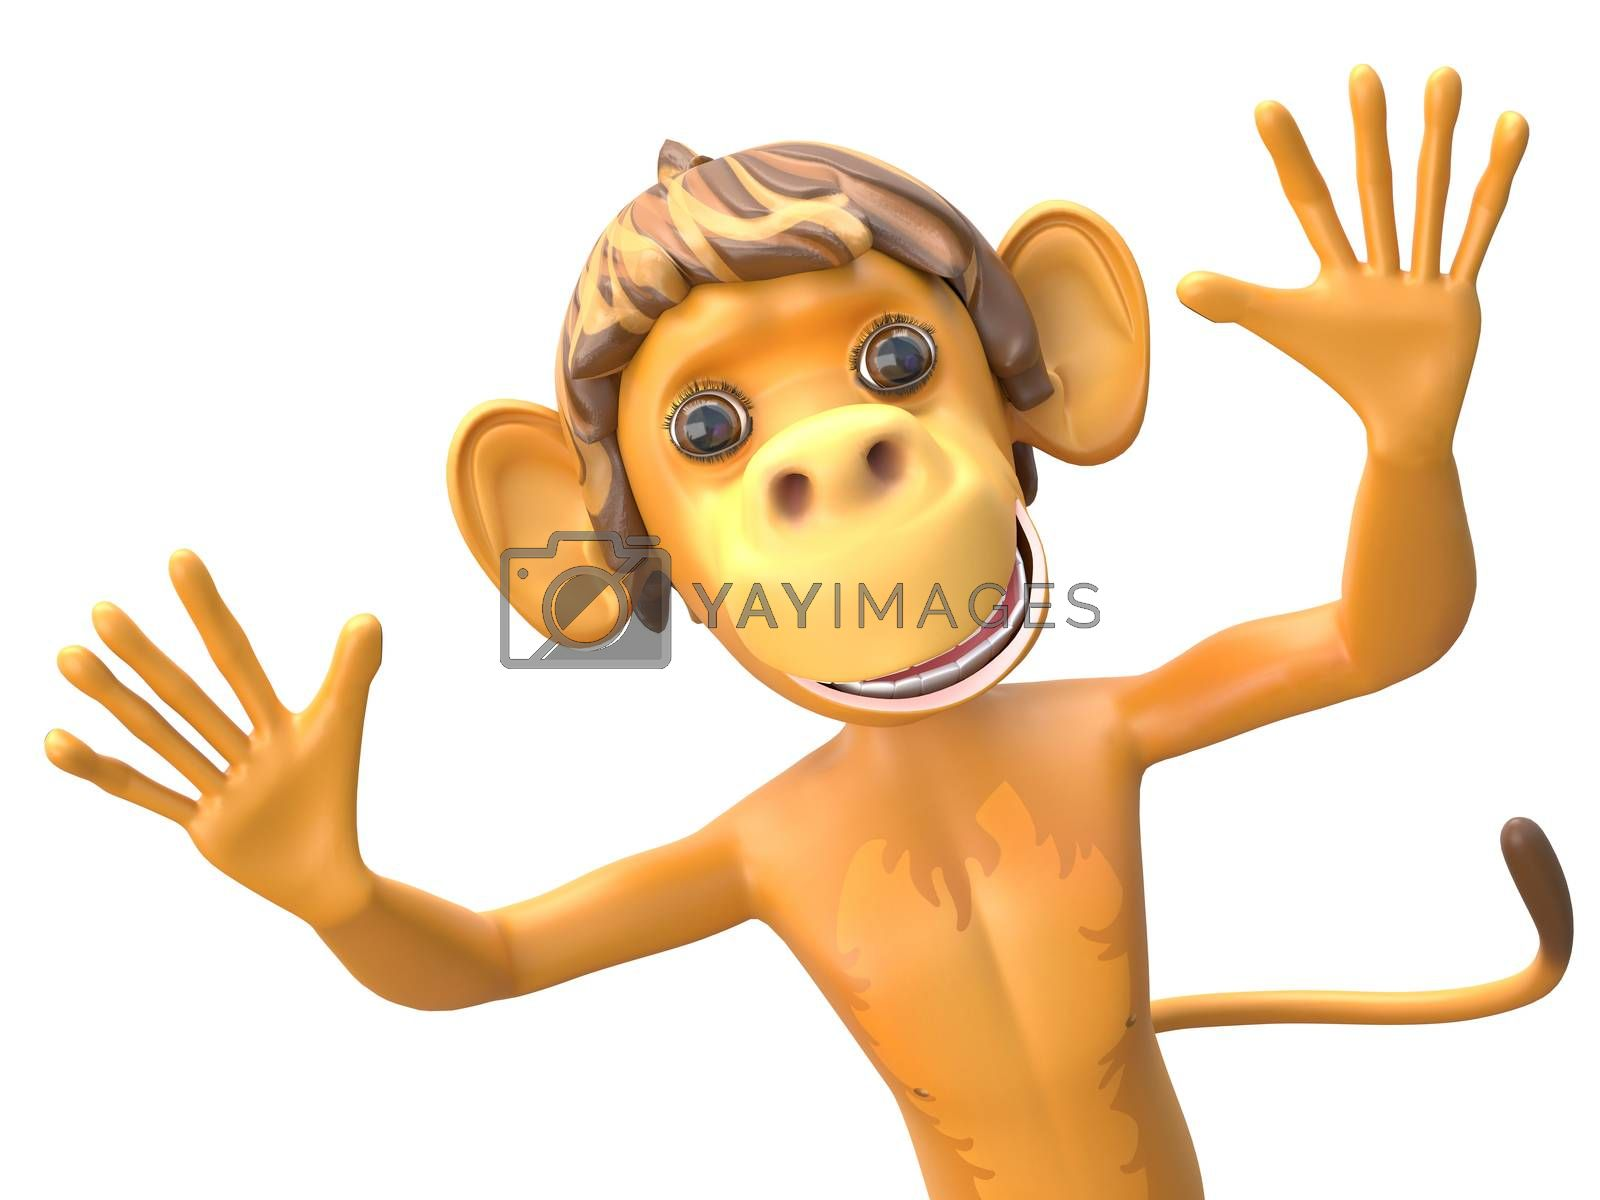 3D Illustration of a Jolly Monkey on White Background